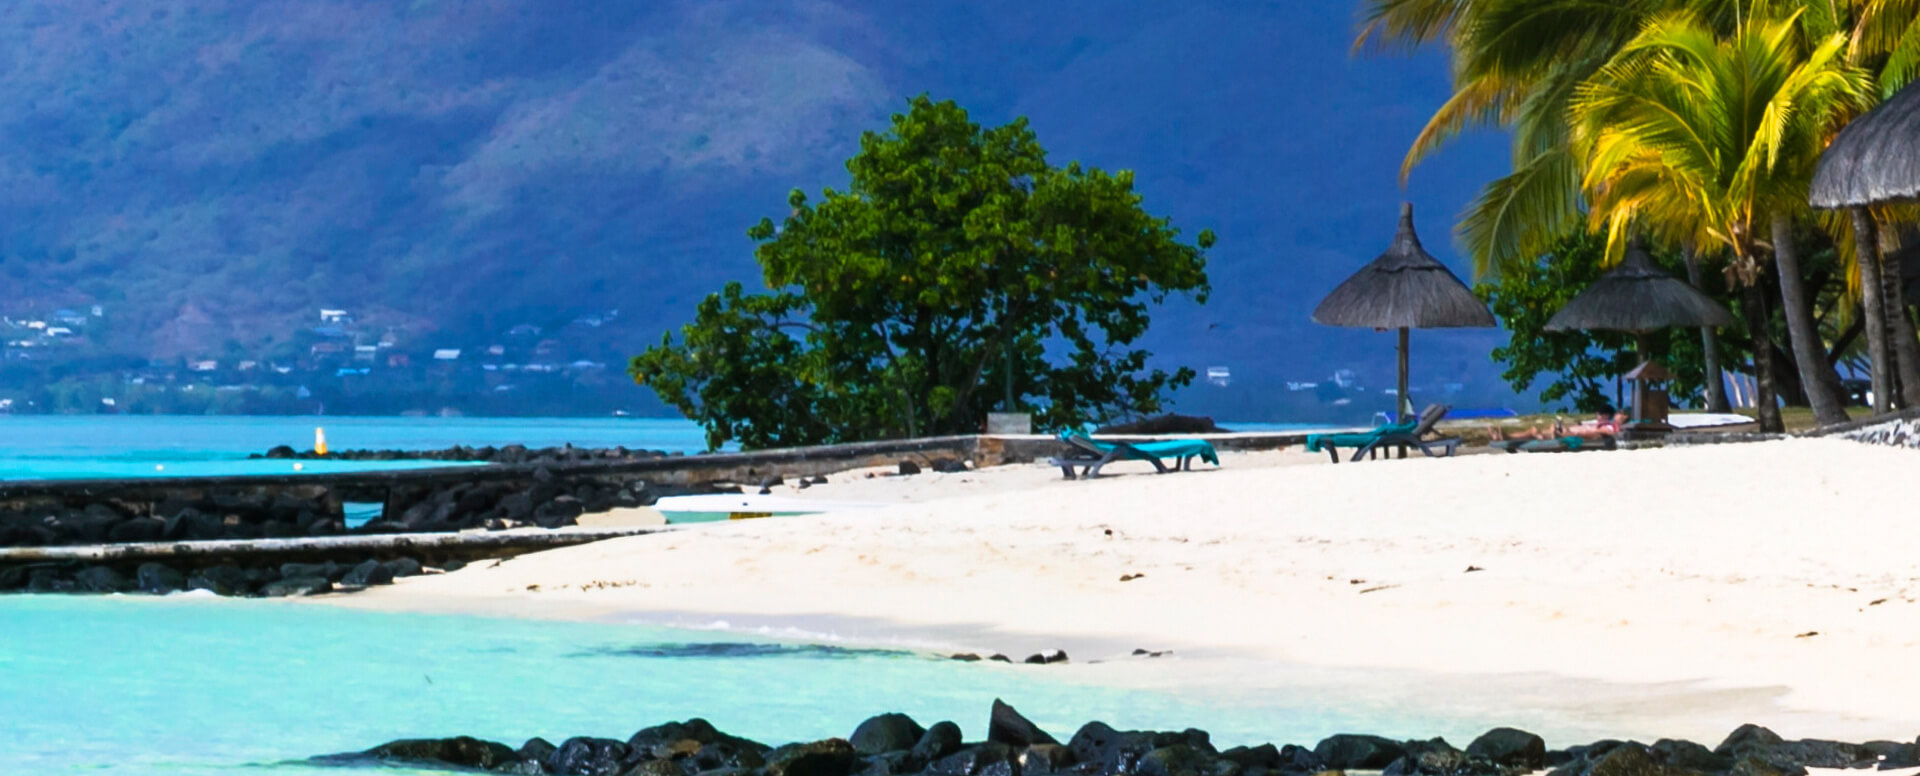 2. Bask in the sunshine on the beautiful beaches - Mauritius